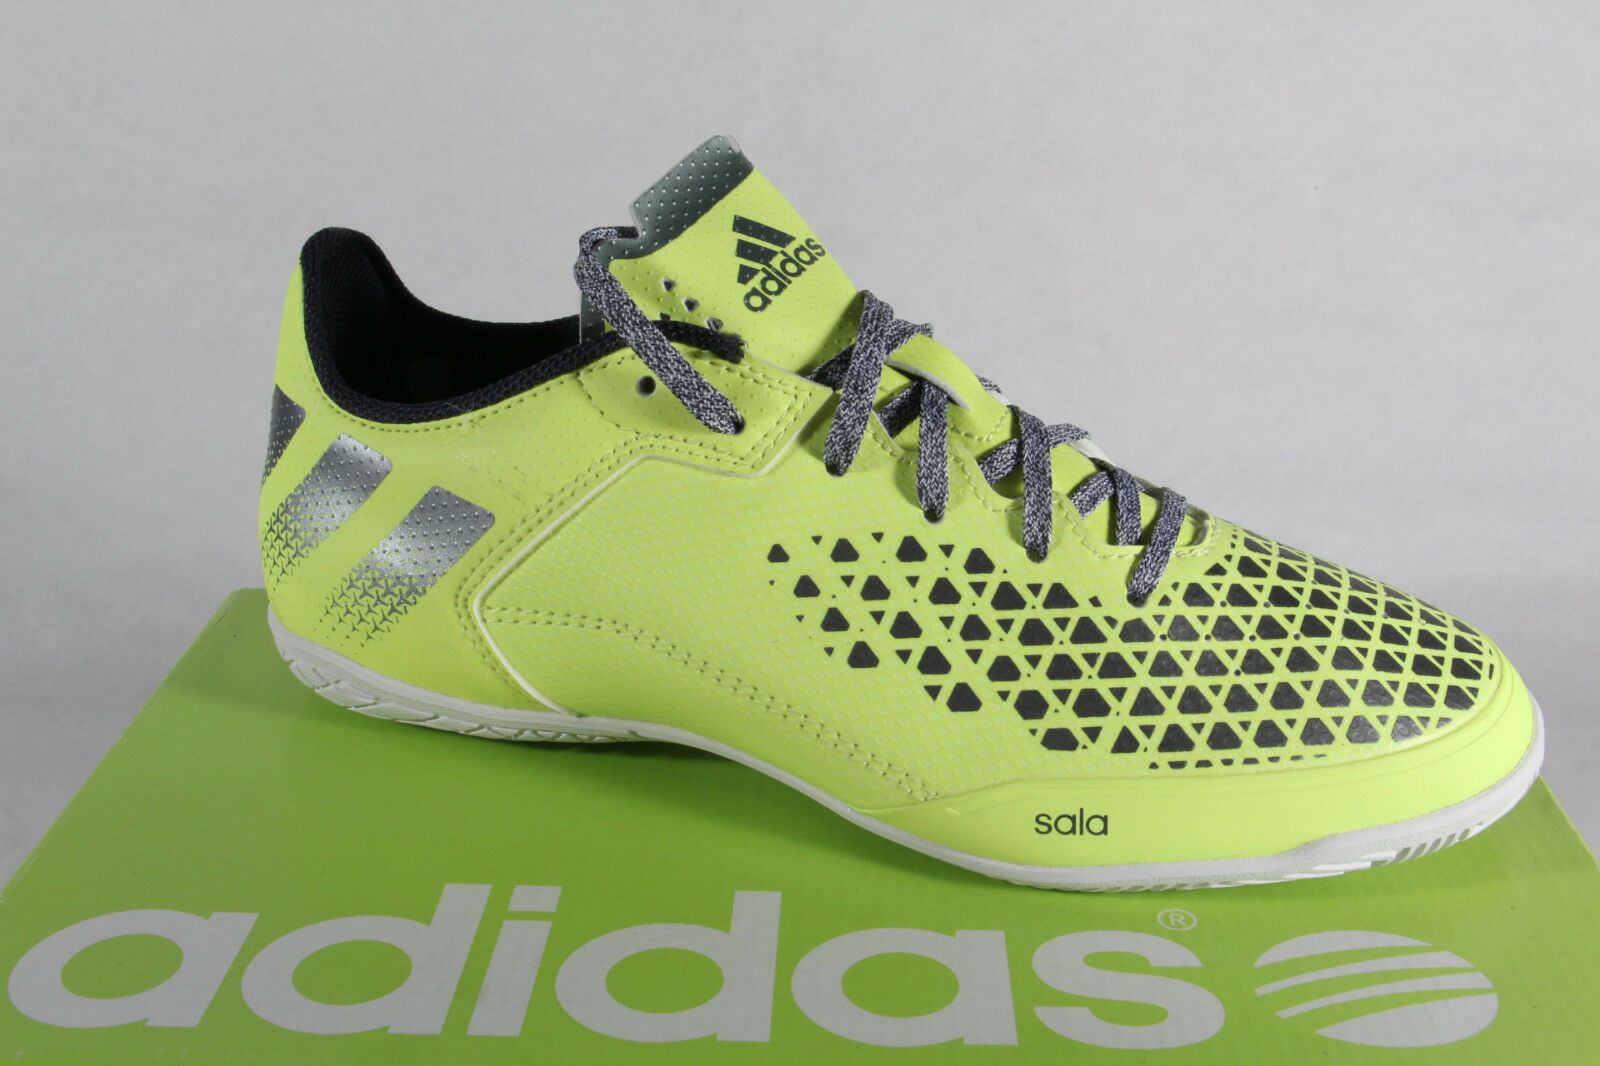 Adidas Men's Lace-Up shoes Sneakers Trainers Ace 16.3 Court Yellow NEW